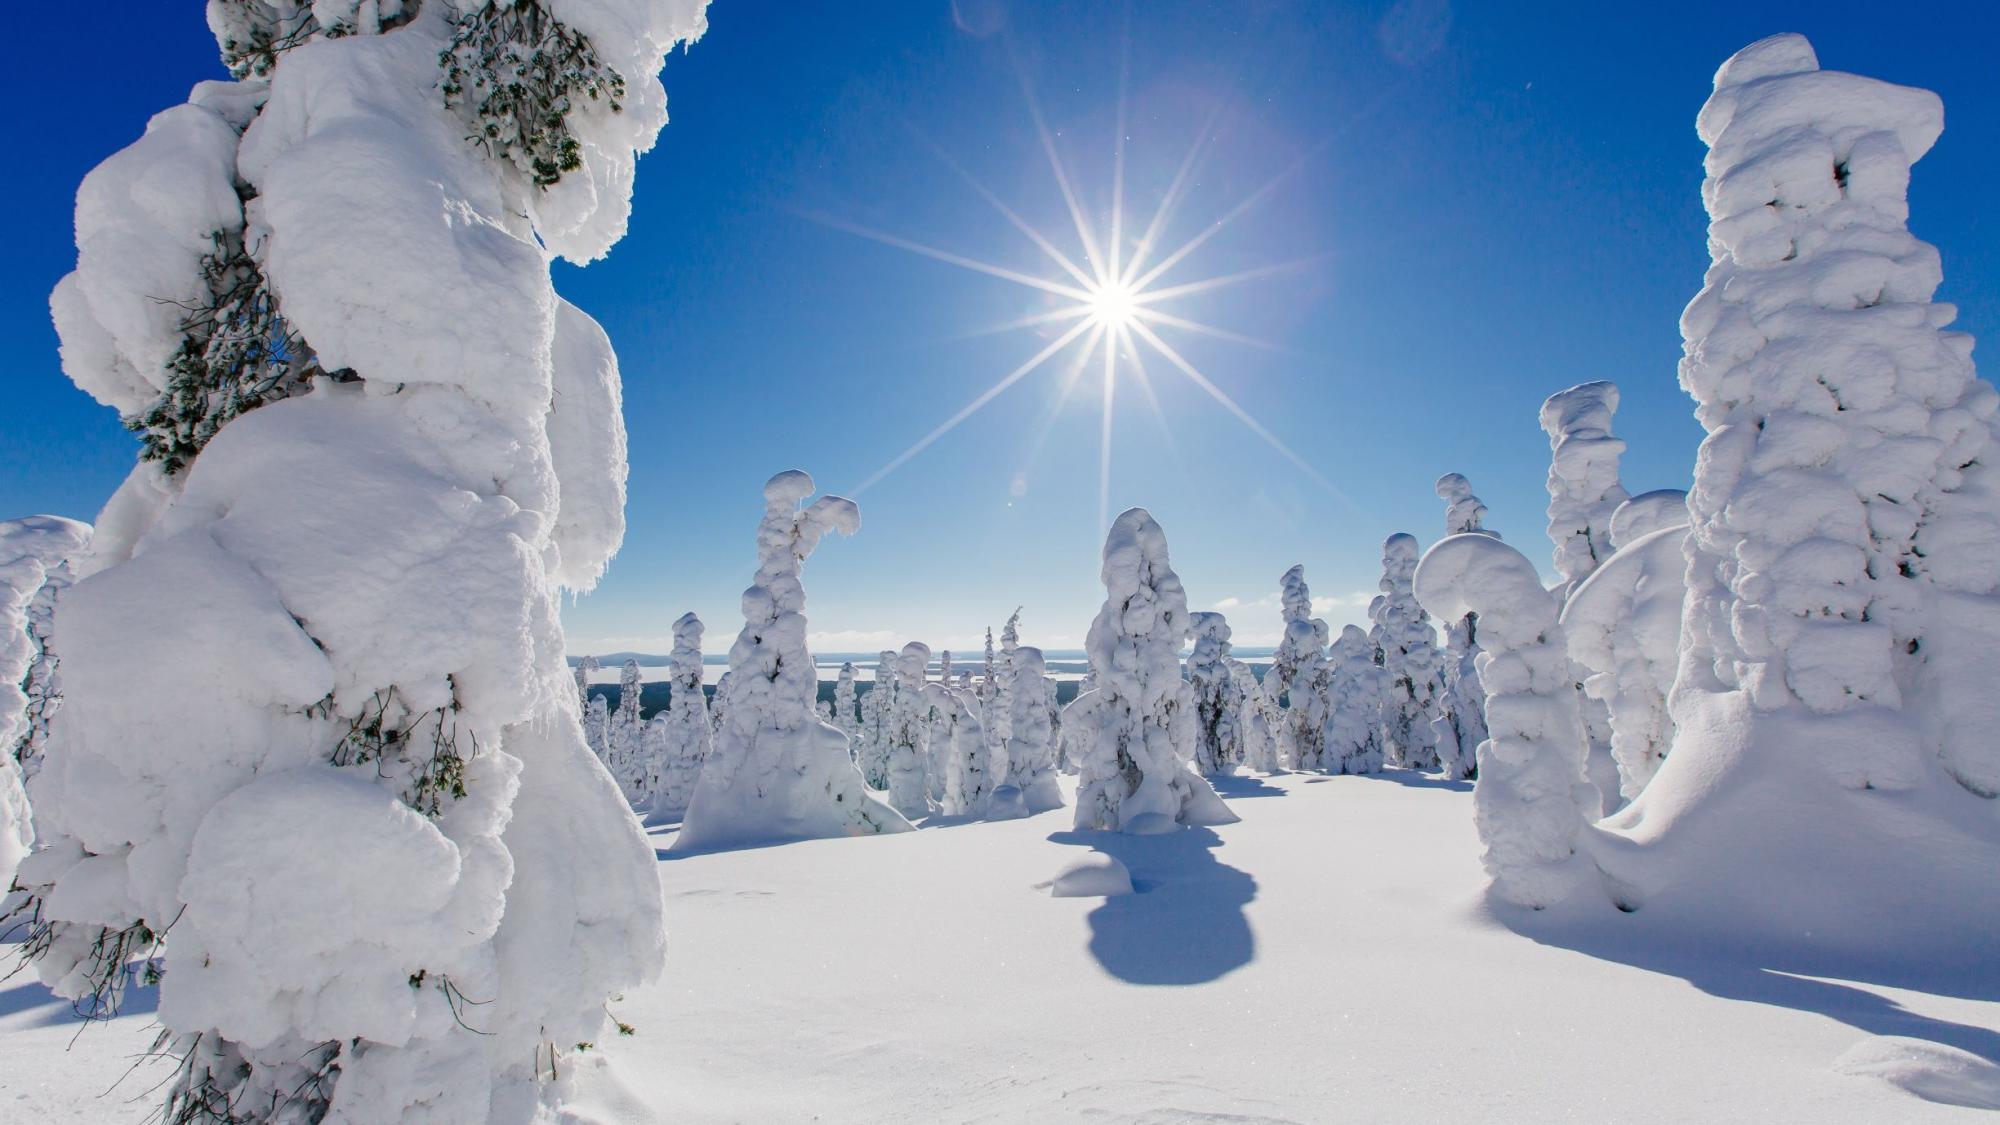 A photo from snowy forest in Northern Finland.